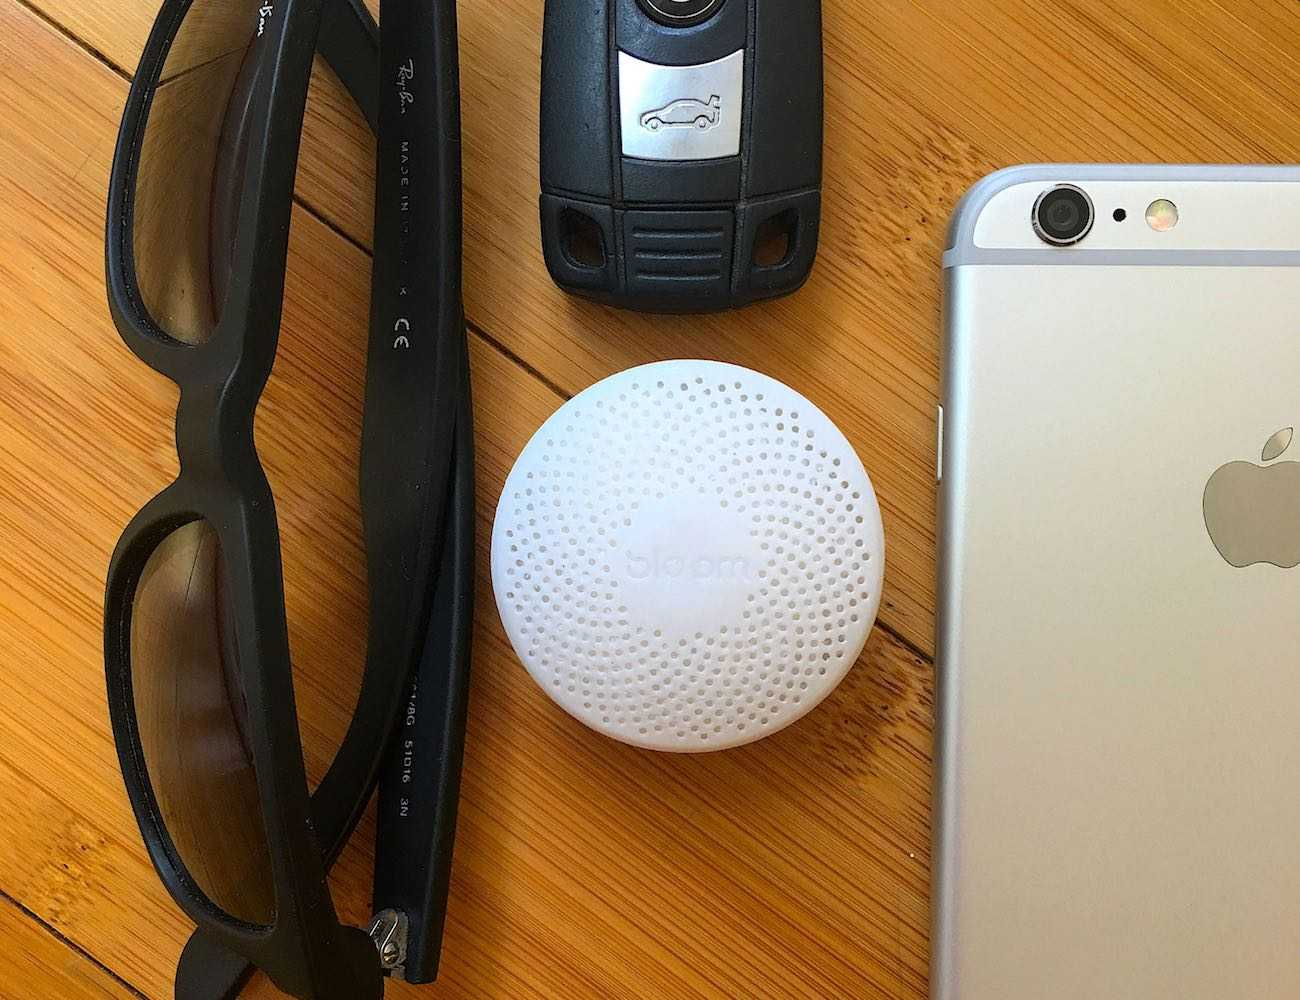 Bloom Portable Air Quality Monitor Lying on a Desk